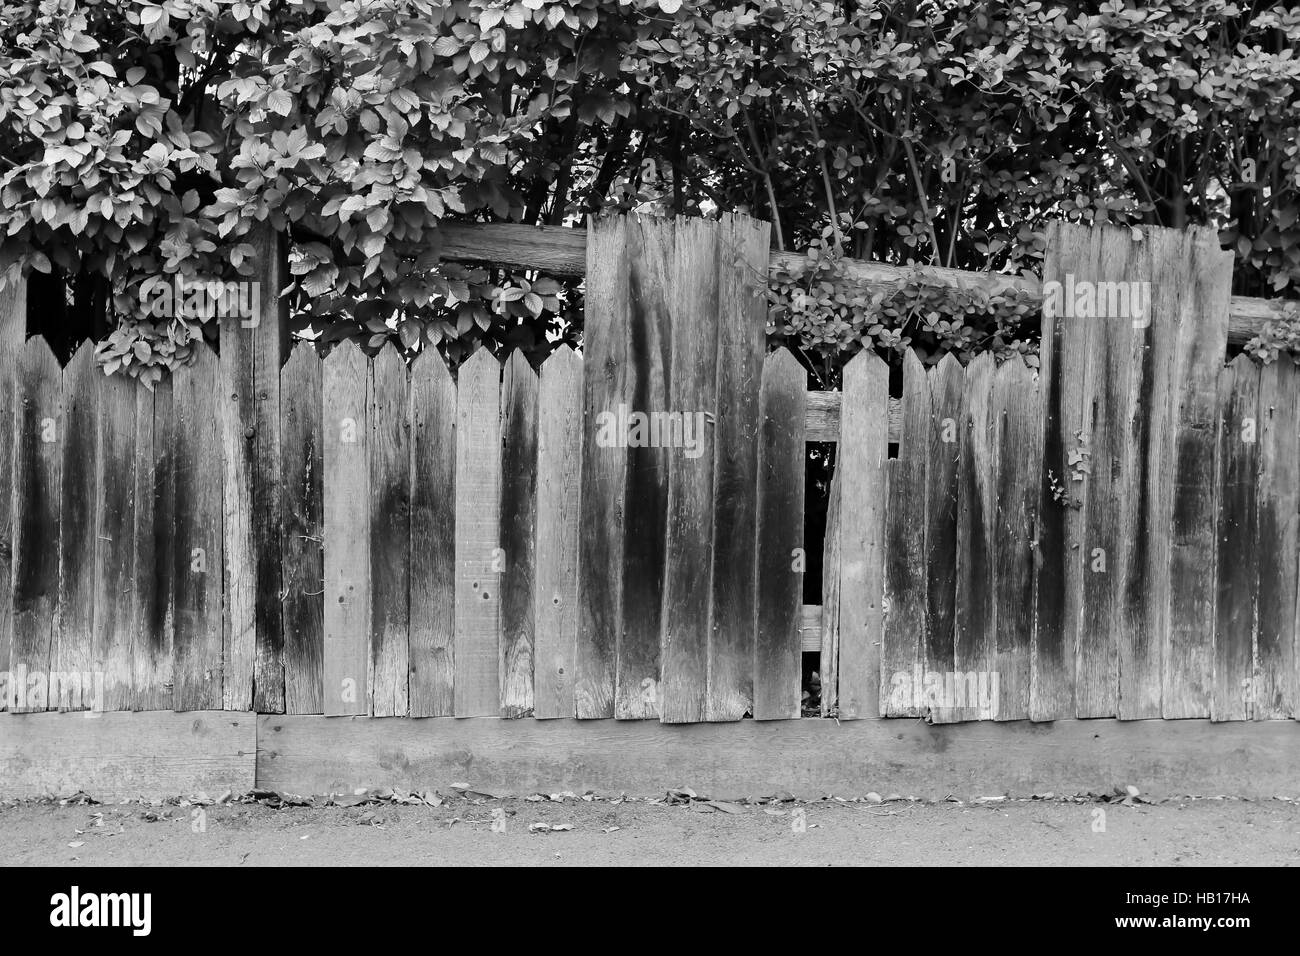 Shabby broken old wooden fence with holes and fallen planks - Stock Image